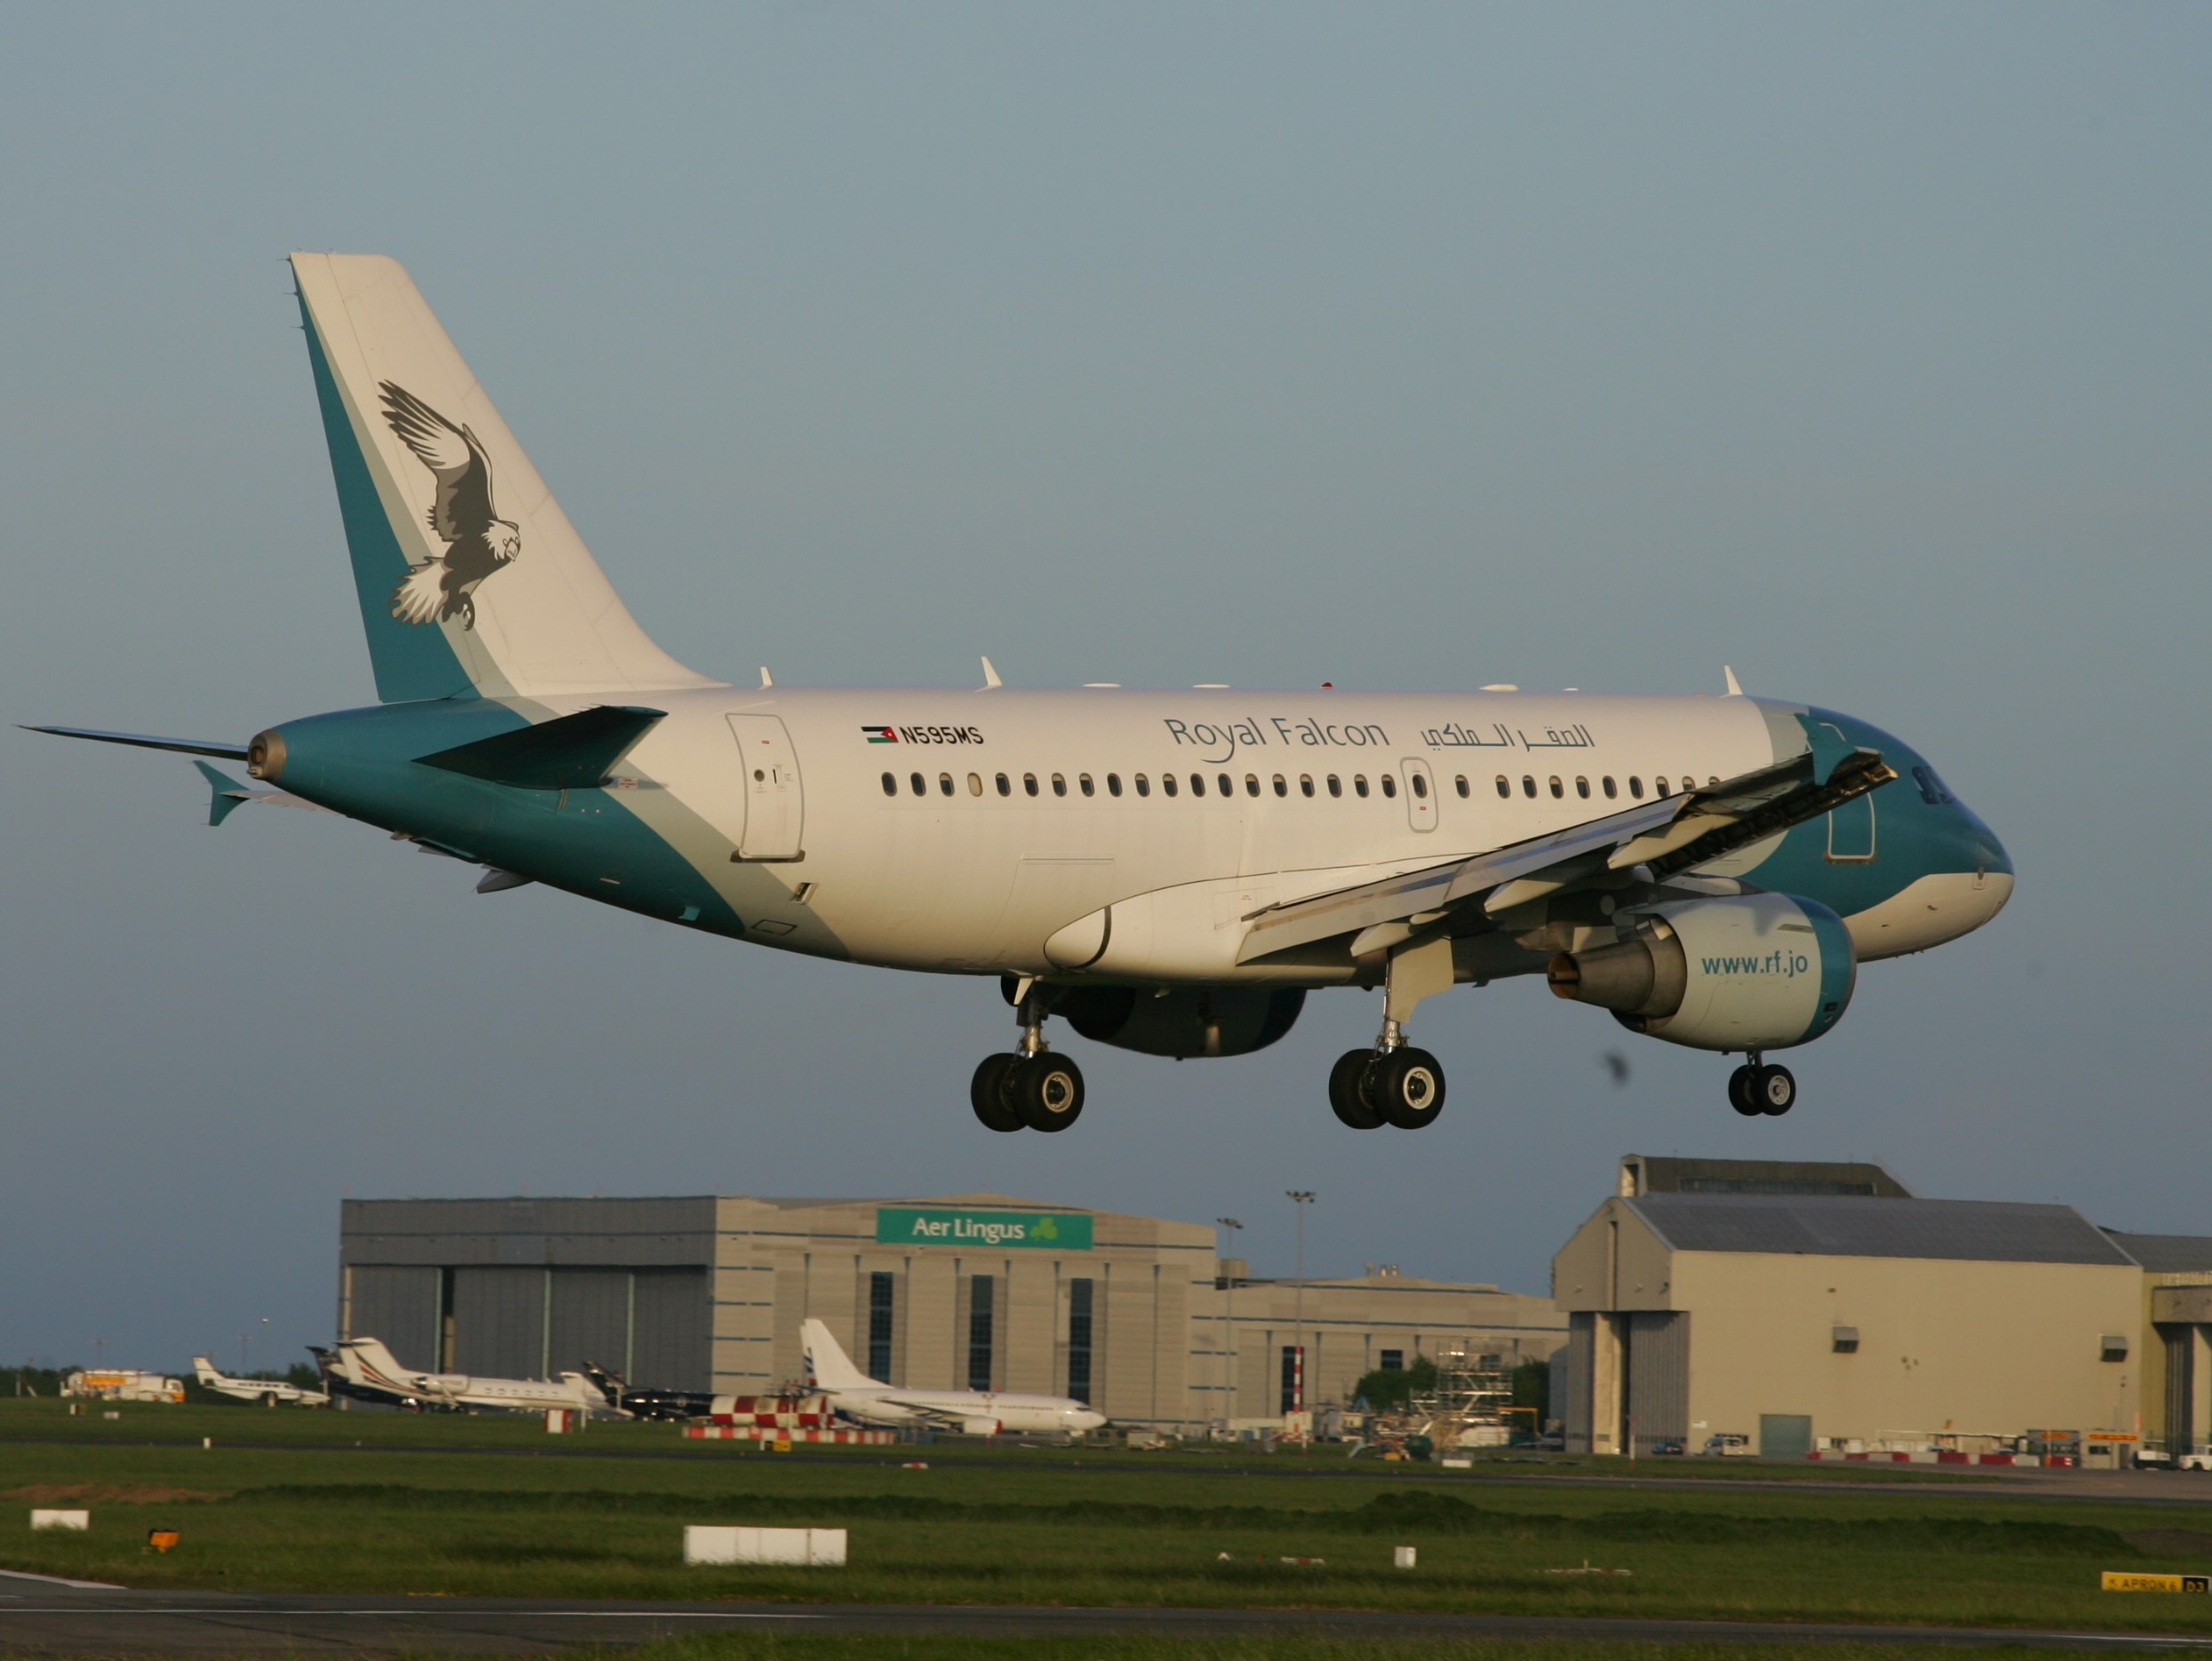 File:N595MS A319 Royal Falcon - Flickr - D464-Darren Hall.jpg - Wikimedia  Commons